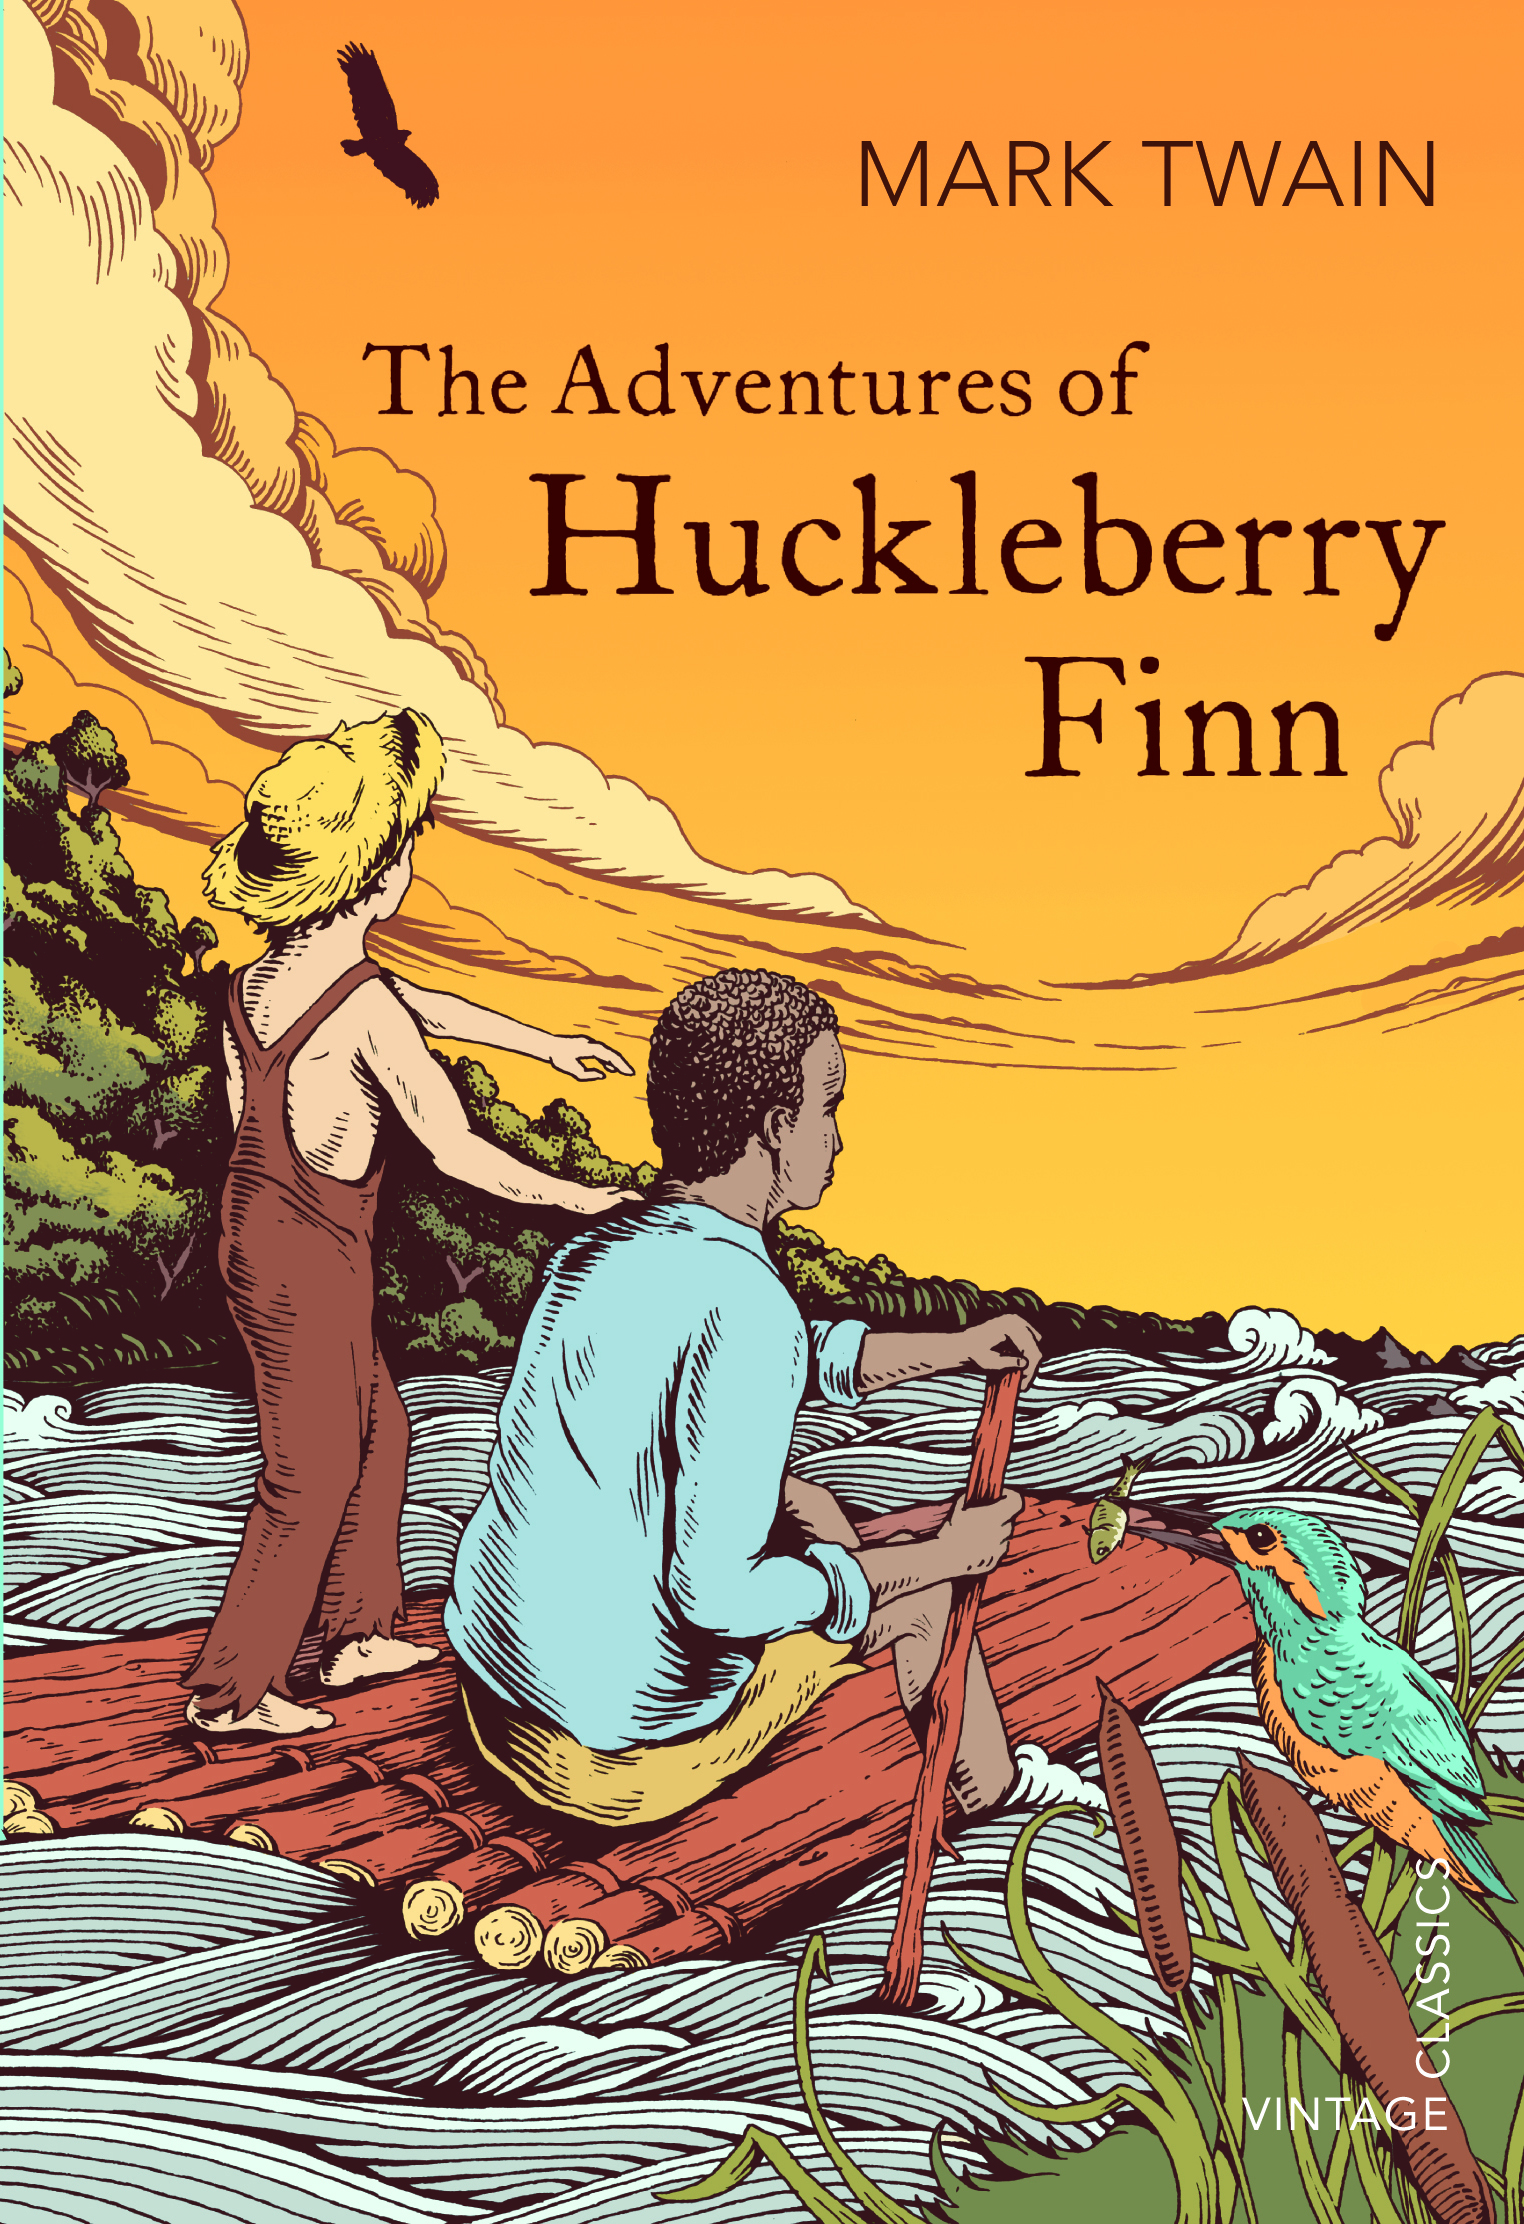 americas most loved fictional characters the adventures of huckleberry finn by mark twain Mark twain's modern cowboy revisiting huckleberry finn before reading coover's sequel, it became clear that the modern cowboy played by john wayne and clint eastwood was born in the pages of mark twain he deserves recognition in the timeline of the wild west's genesis, which places heavy emphasis on writers such as zane.